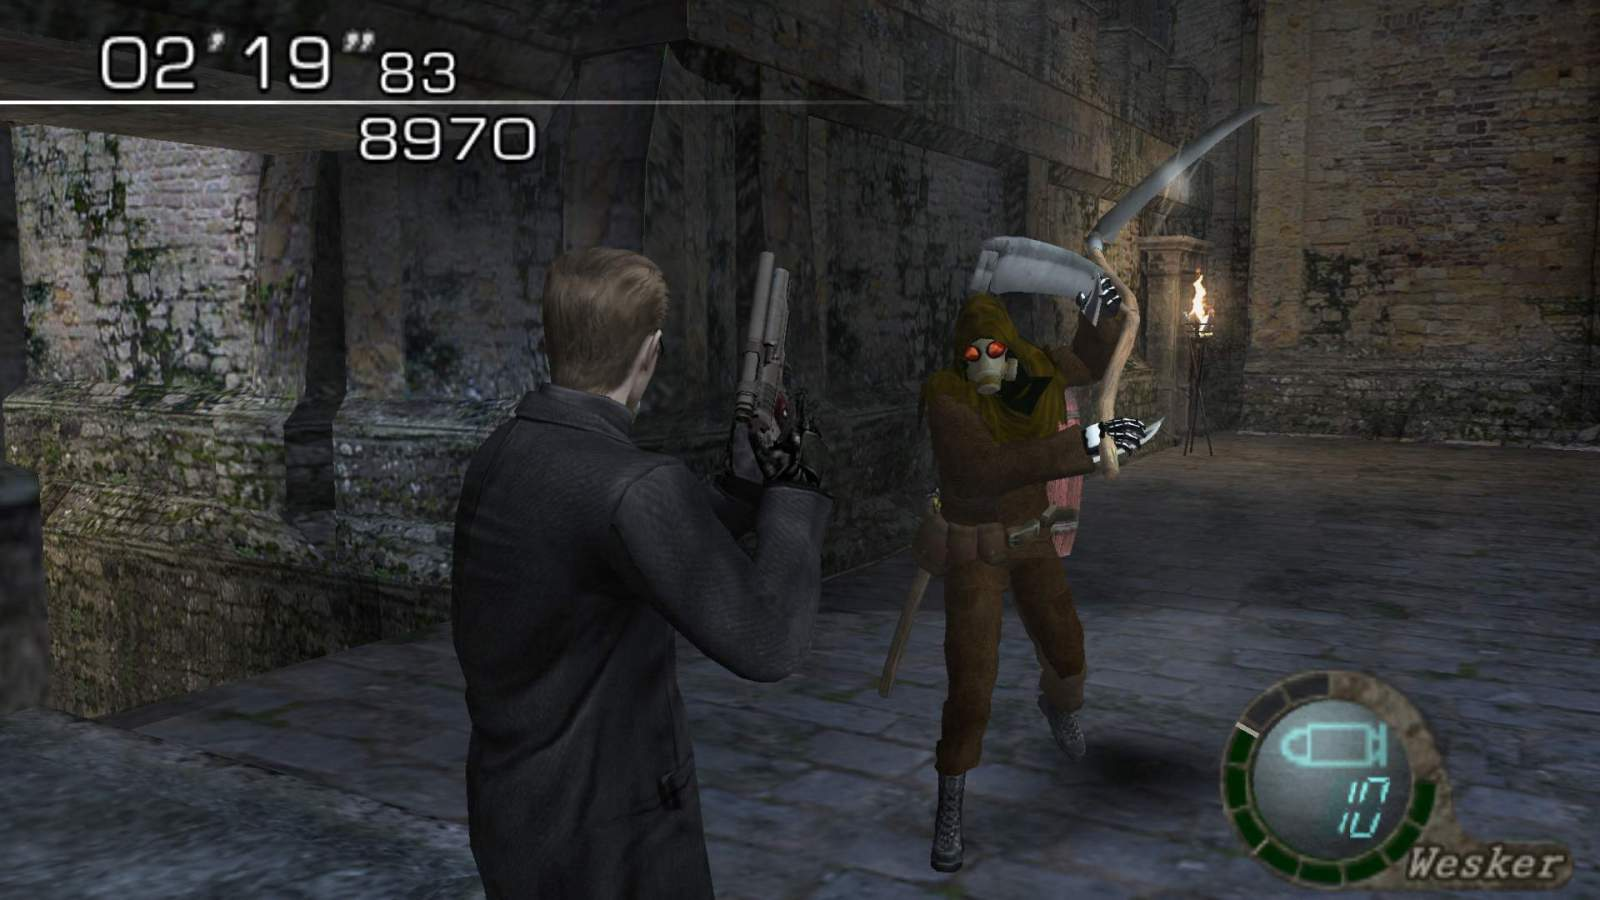 Hunk (Mr. Death) - Resident Evil The Mercenaries 3D - por Iluminados v.1.0 2l9gx7d